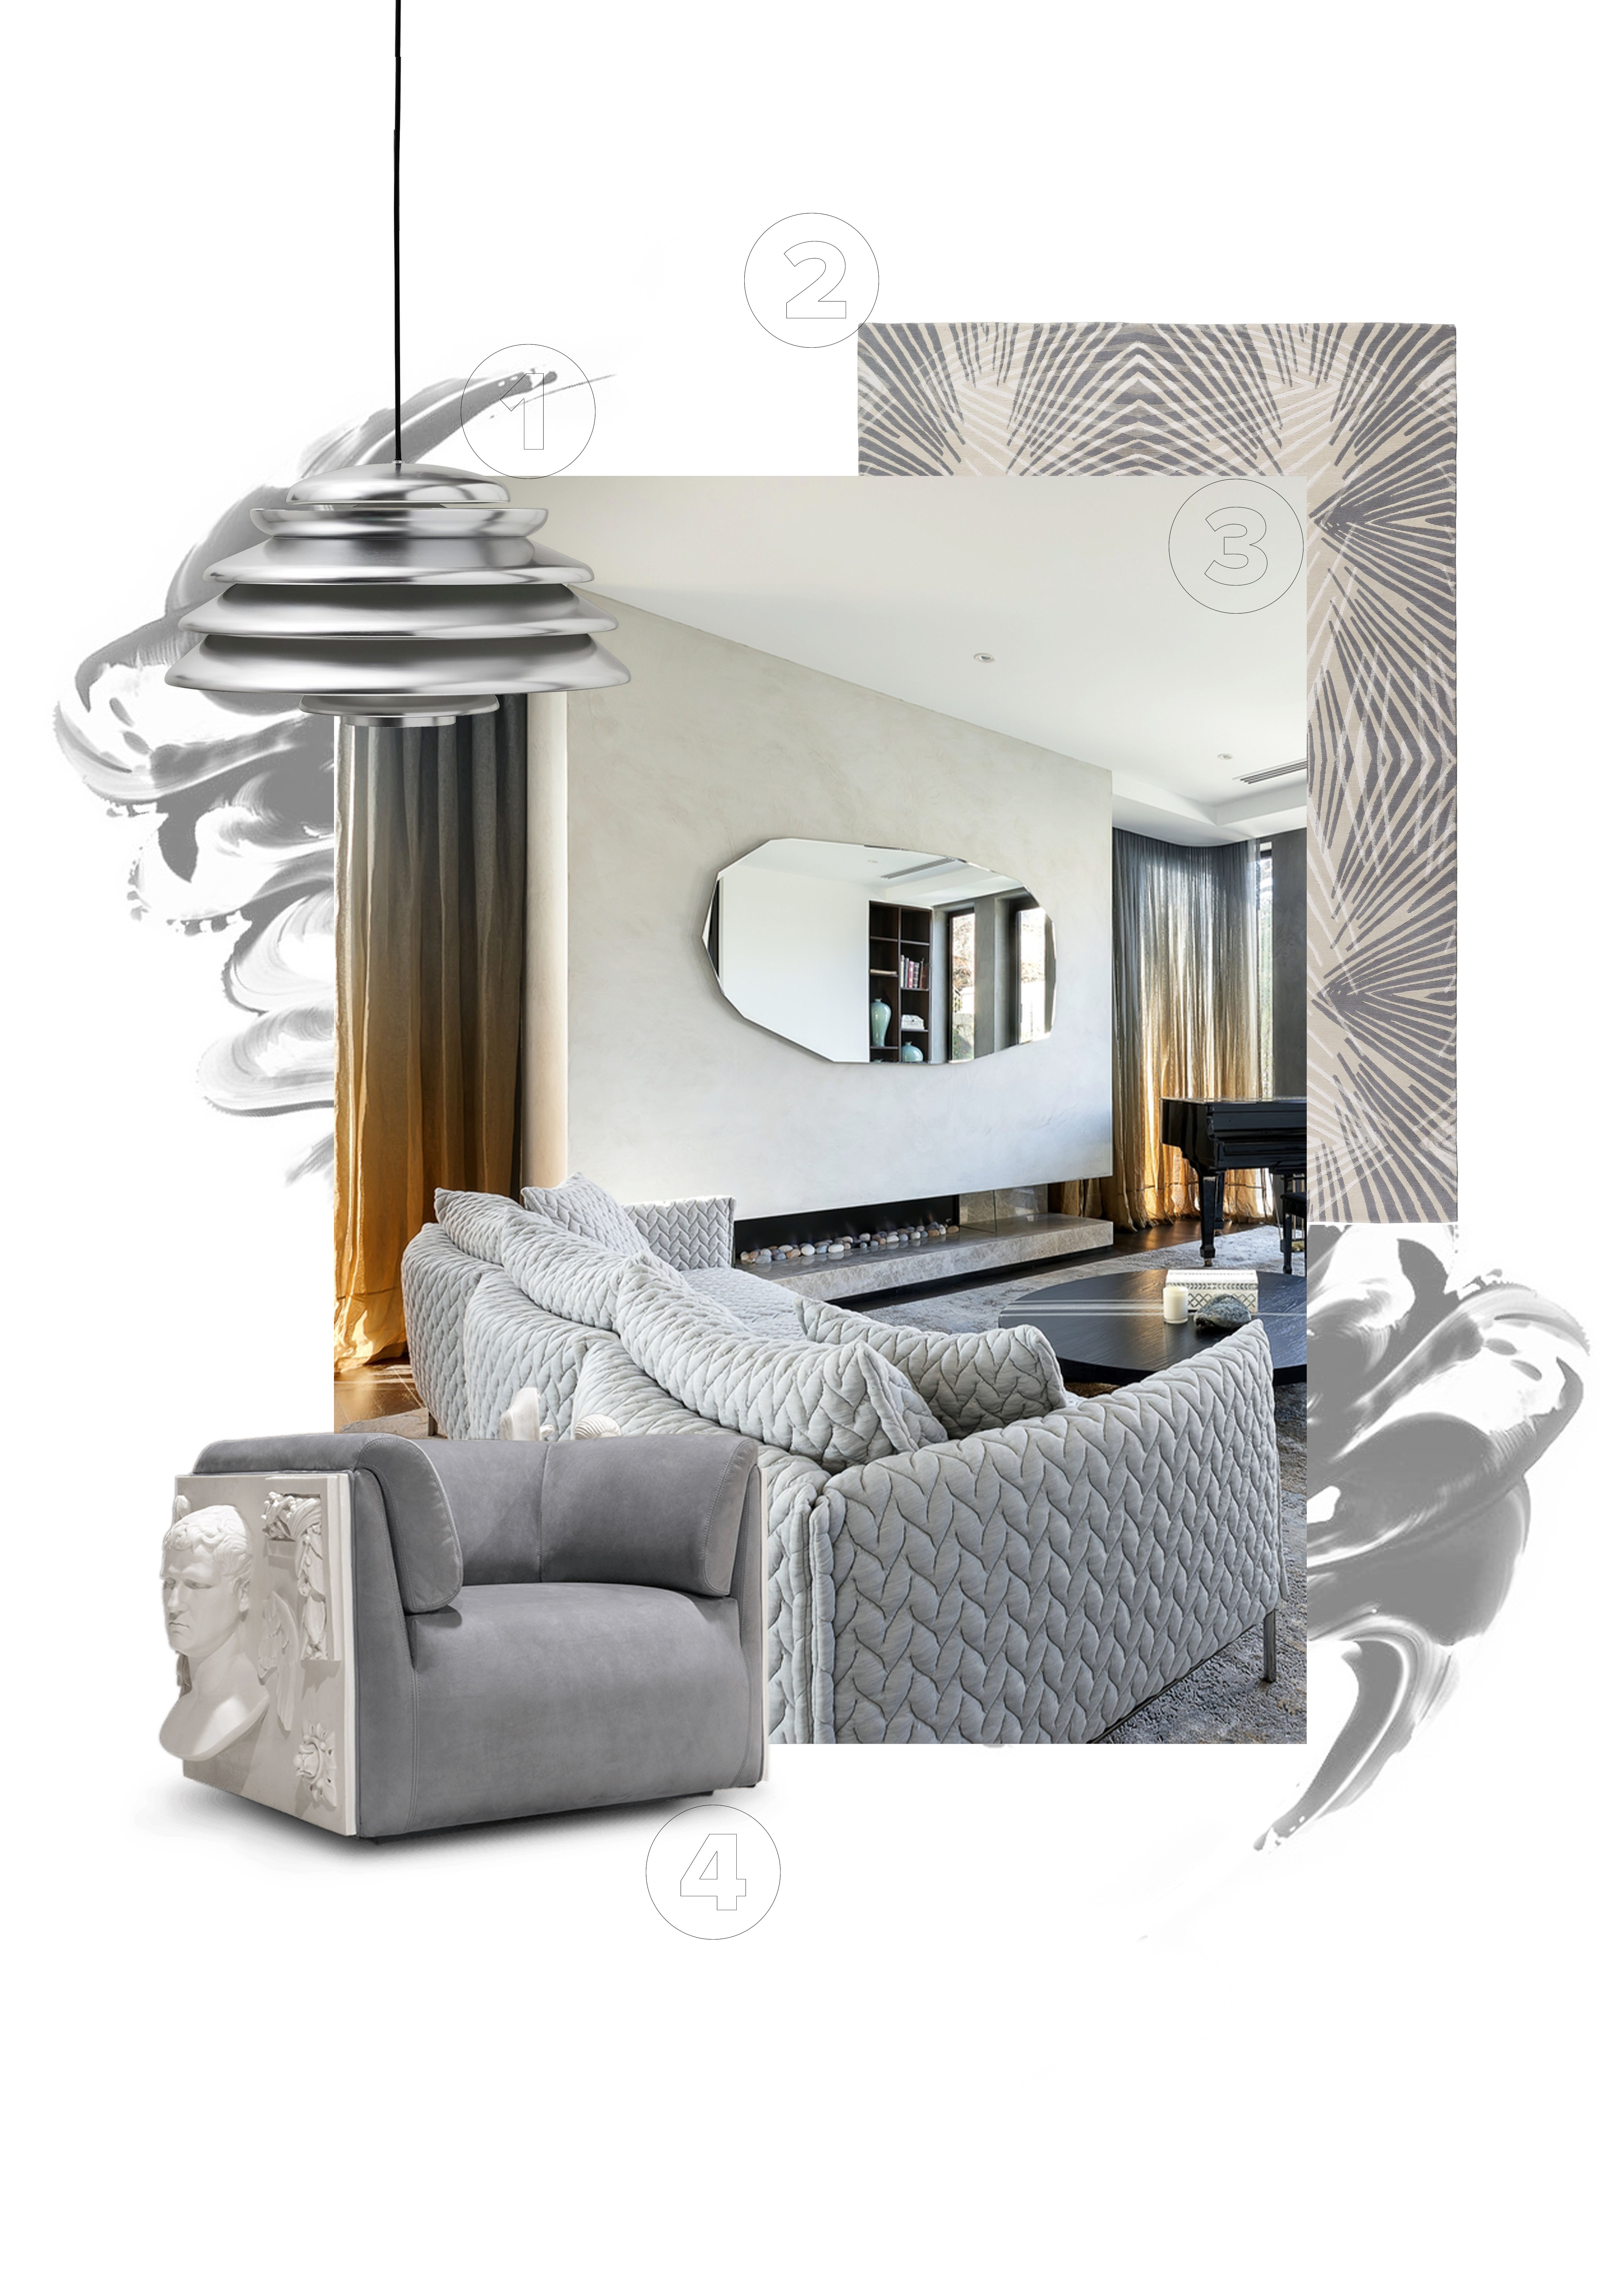 Trend Colours 2021 in 2020 | Color trends, Modern design ...